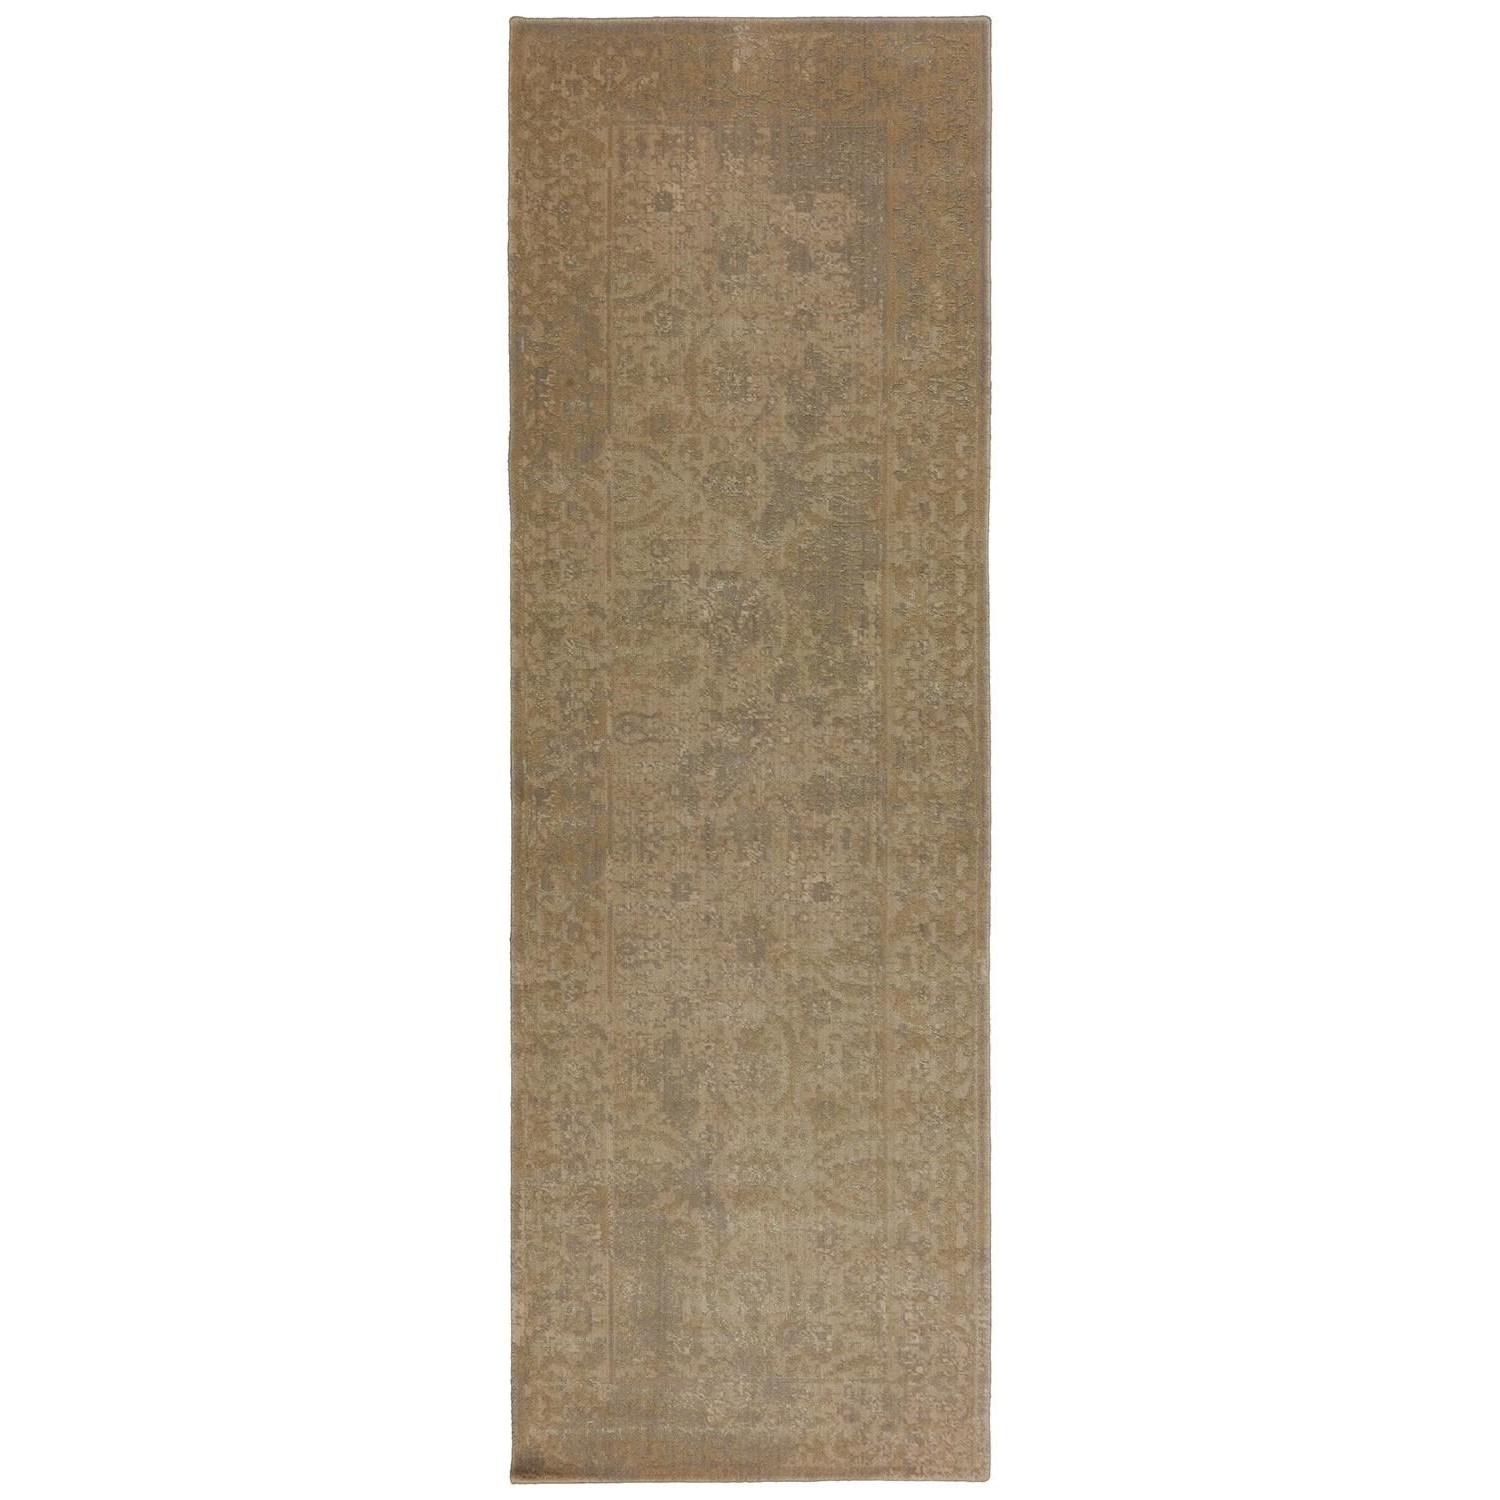 Karastan Rugs Evanescent 2'6x8' Terni Light Rug Runner - Item Number: RG818 443 030096